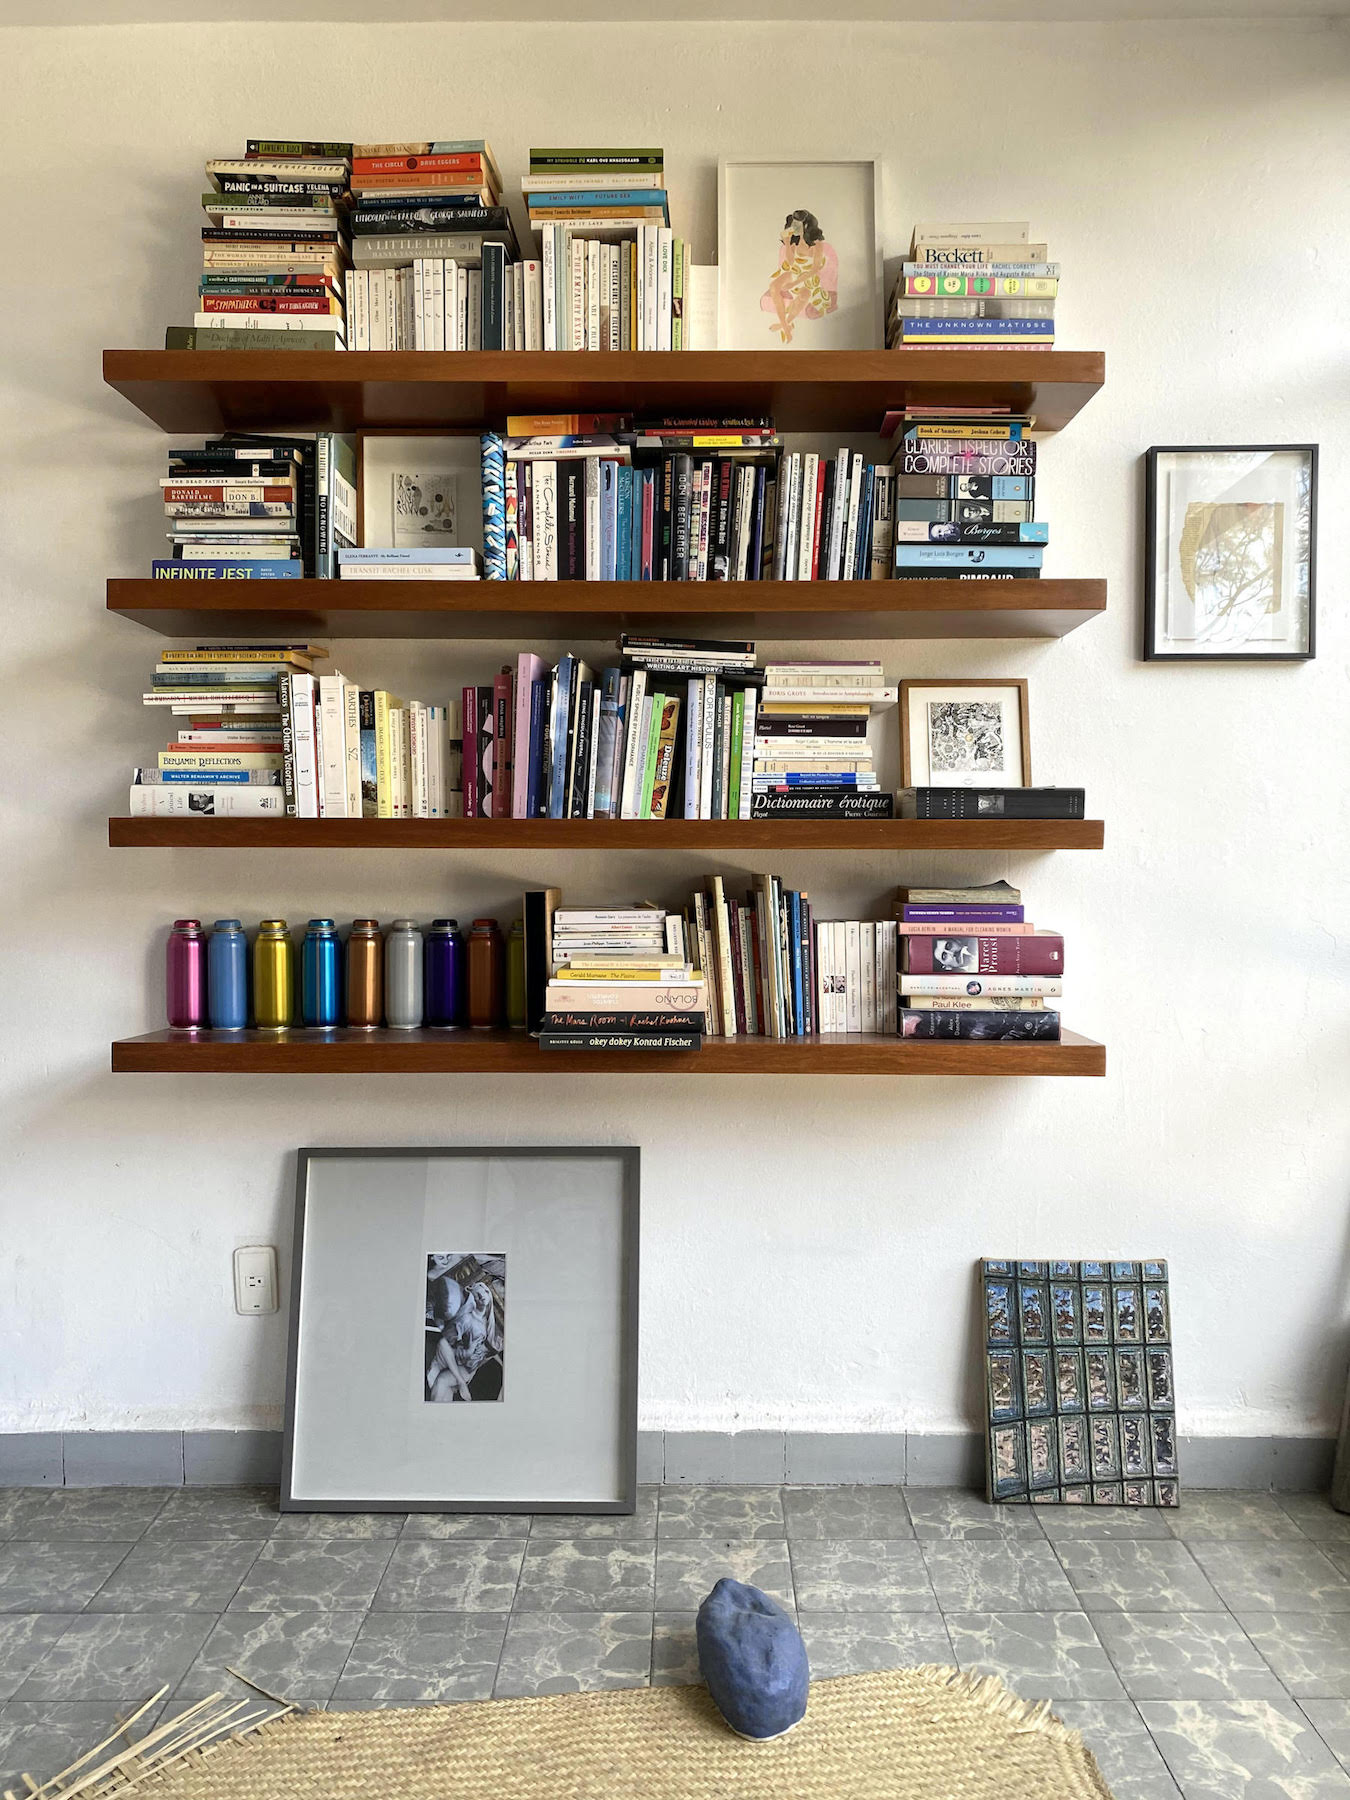 Shelves of books and works by Priscilla Weidlein, Jose Antonio Suarez Londoño, Padraig Timoney, Jean-Luc Moulène, Becky Beasley, Martin Soto Climent, Jennifer J. Lee, and Kate Newby. Courtesy of Chris Sharp.